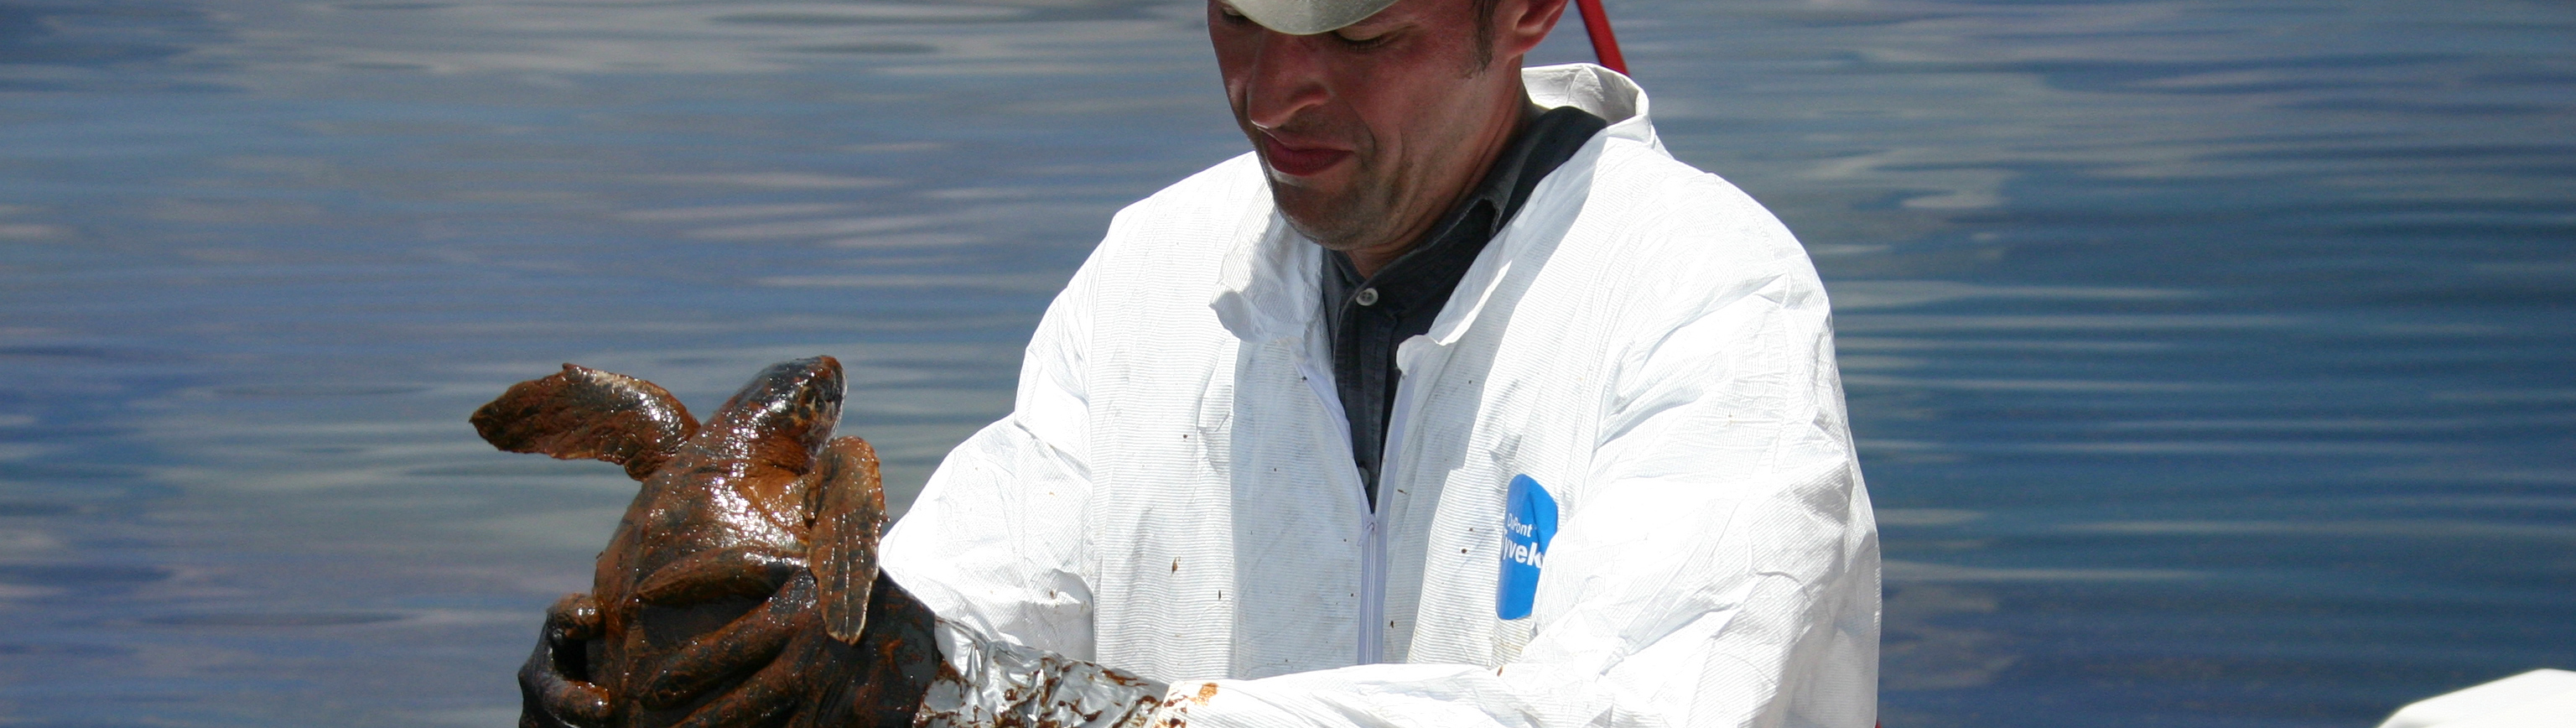 A recovered oiled sea turtle during the 2010 Deepwater Horizon oil spill in the Gulf of Mexico.